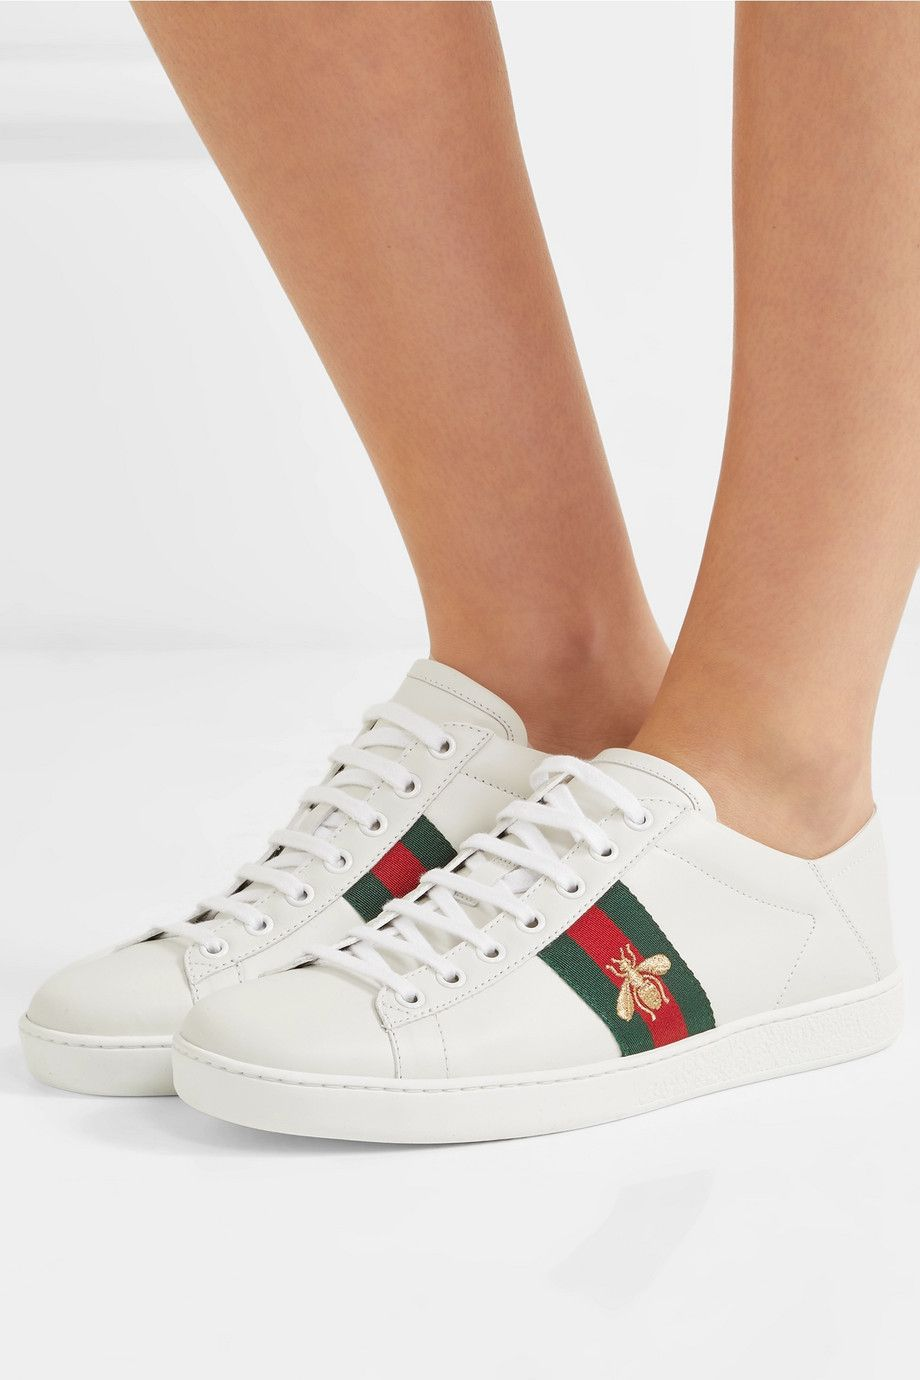 64c07b1e6 Gucci | Ace embroidered leather collapsible-heel sneakers | NET-A-PORTER.COM